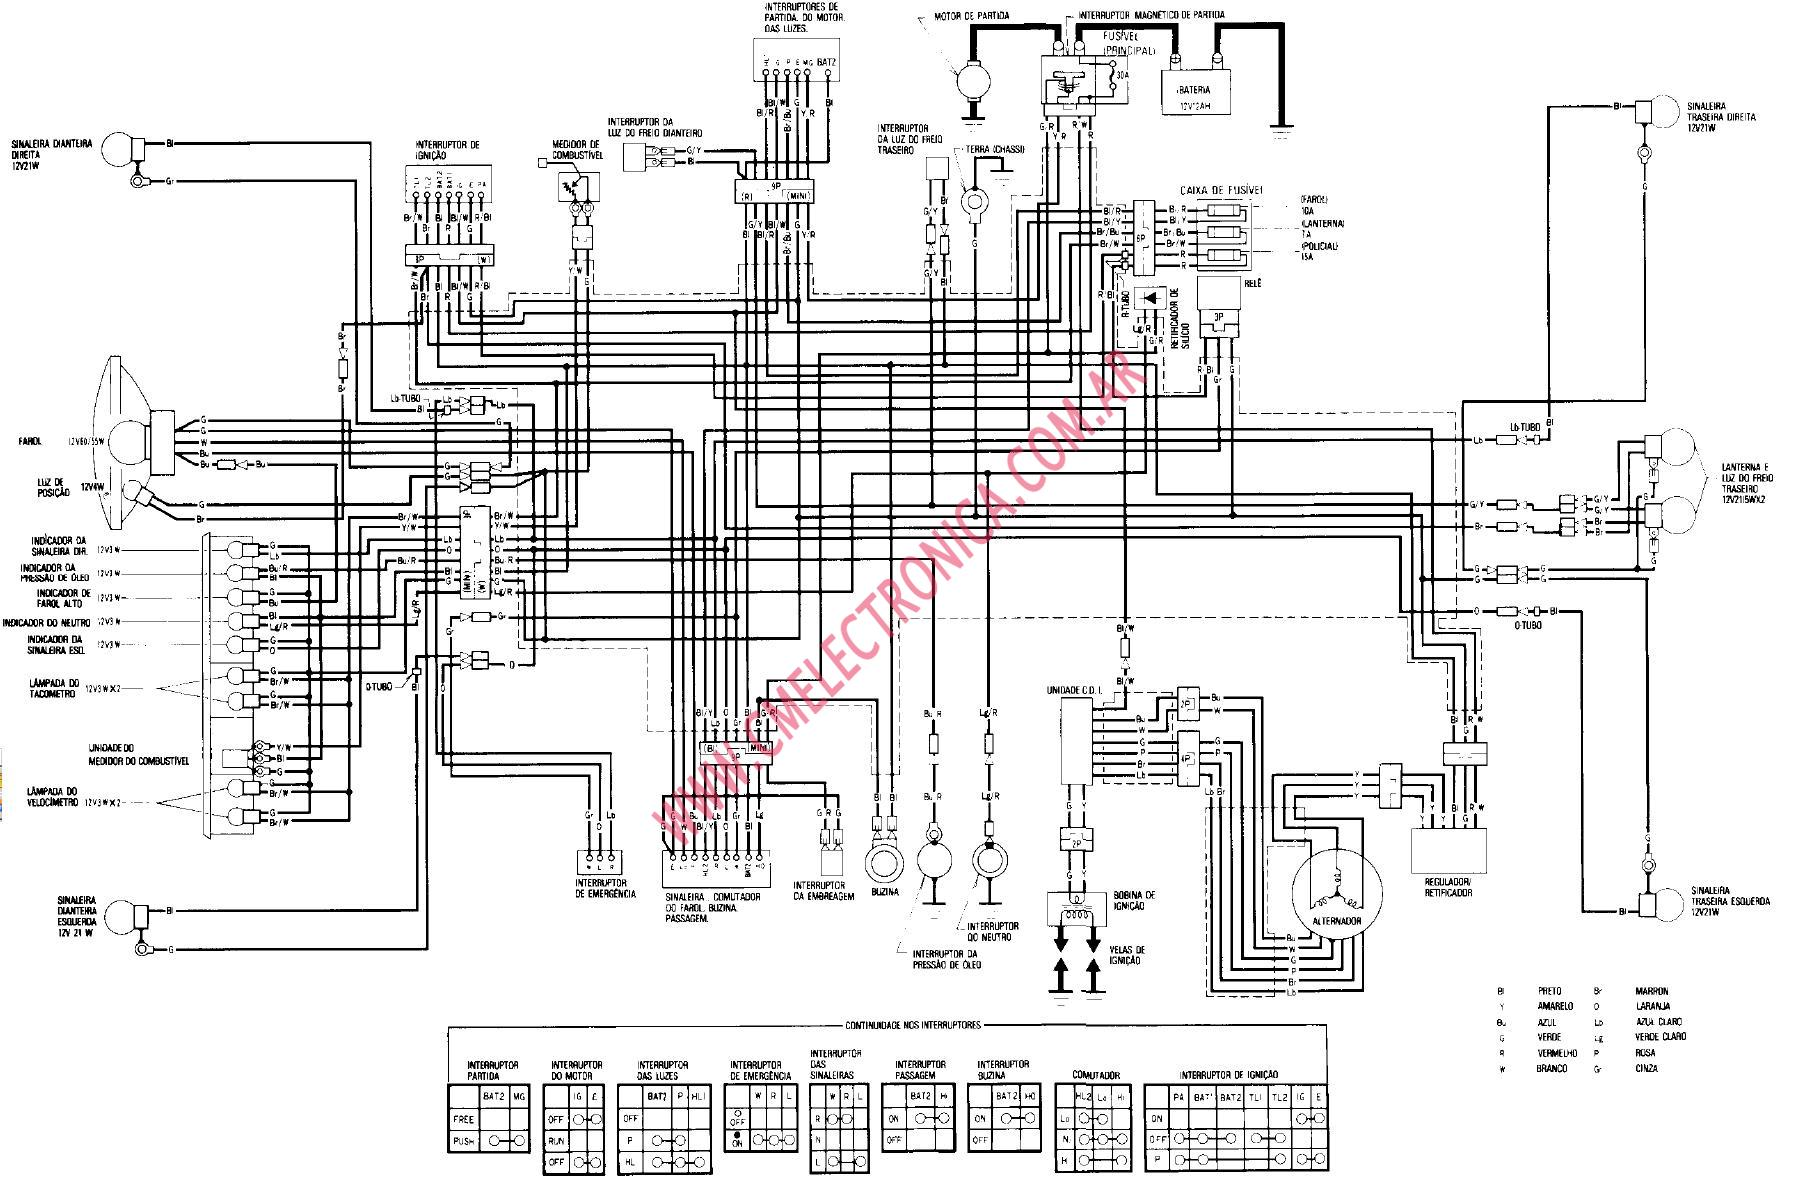 diagrama honda cb400n superdream 92 honda civic chassis wiring diagram